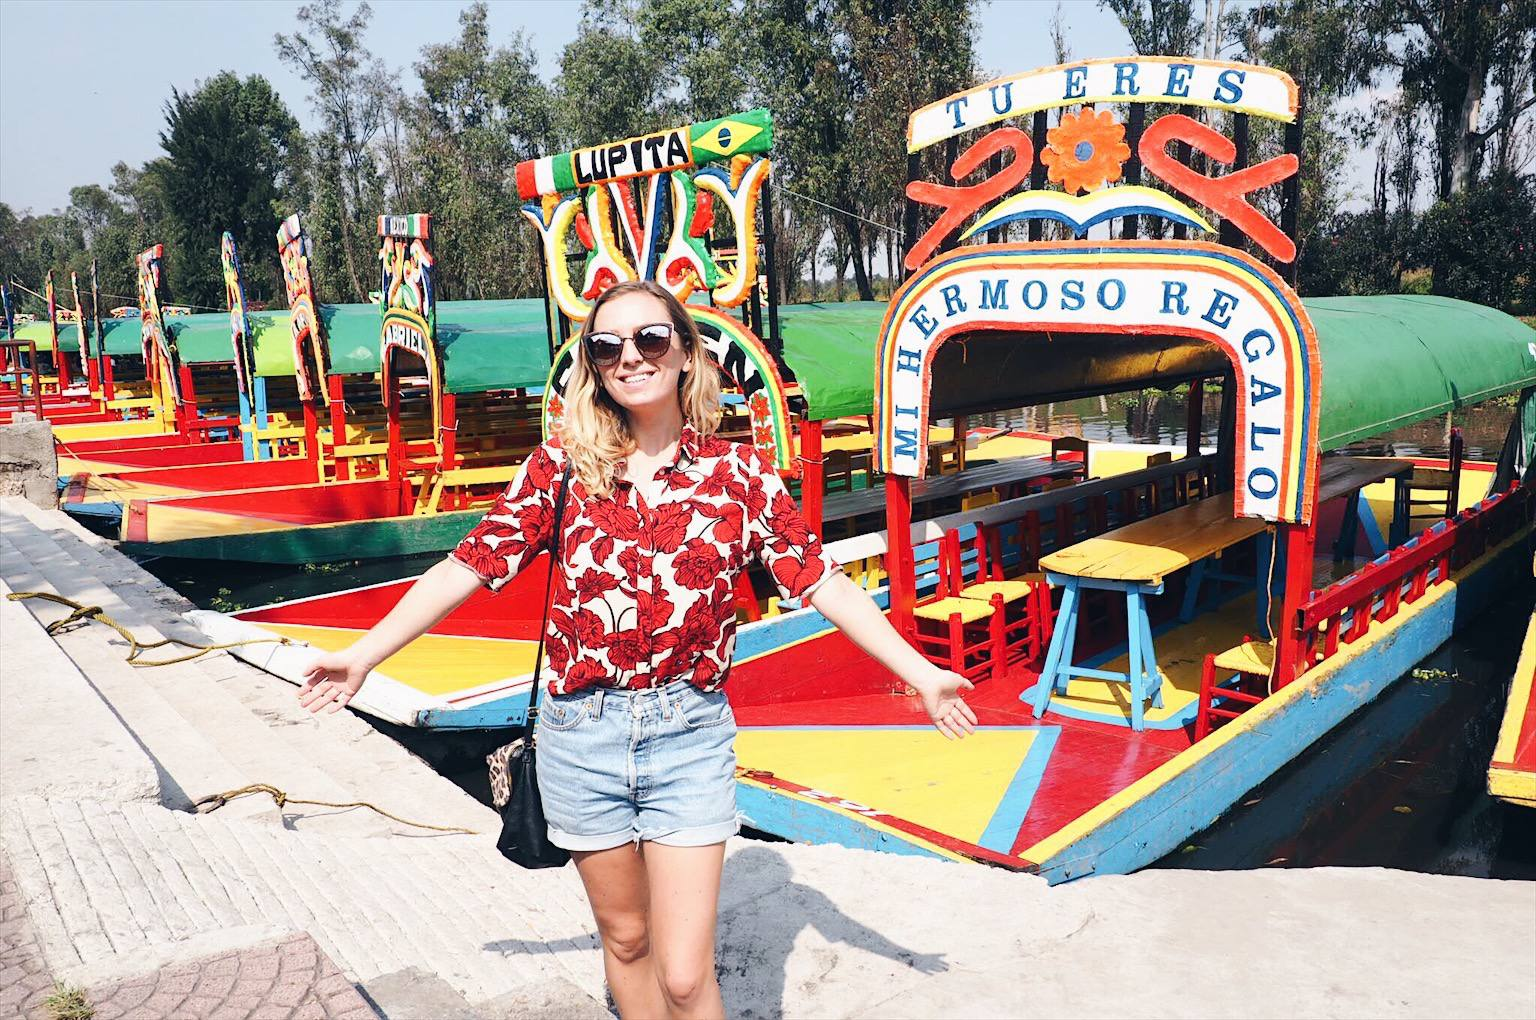 Xochimilco Mexico City The Best Attraction In Mexico City While